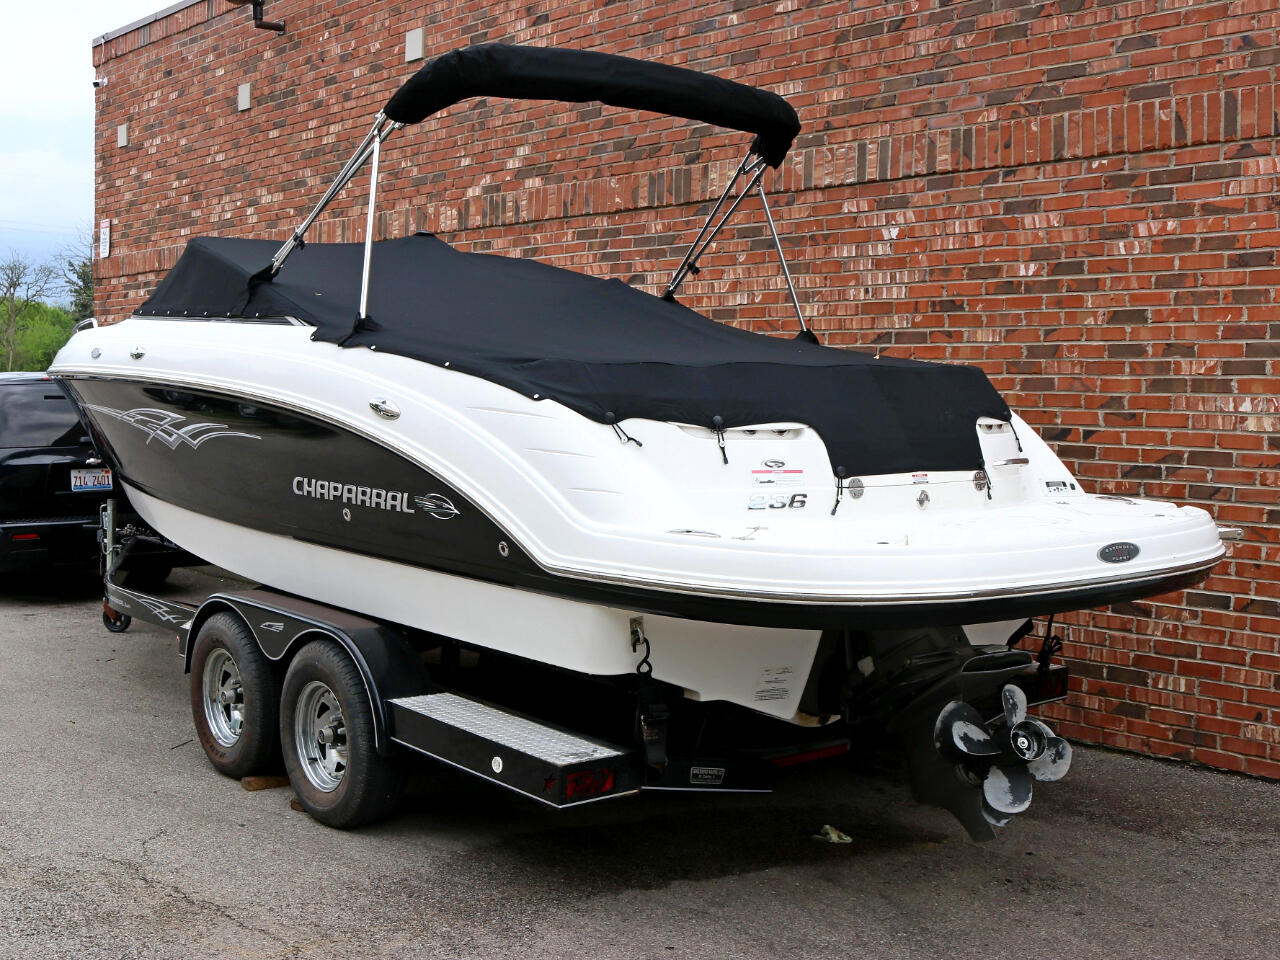 2008 Chaparral Pleasure Boat 236 SSI